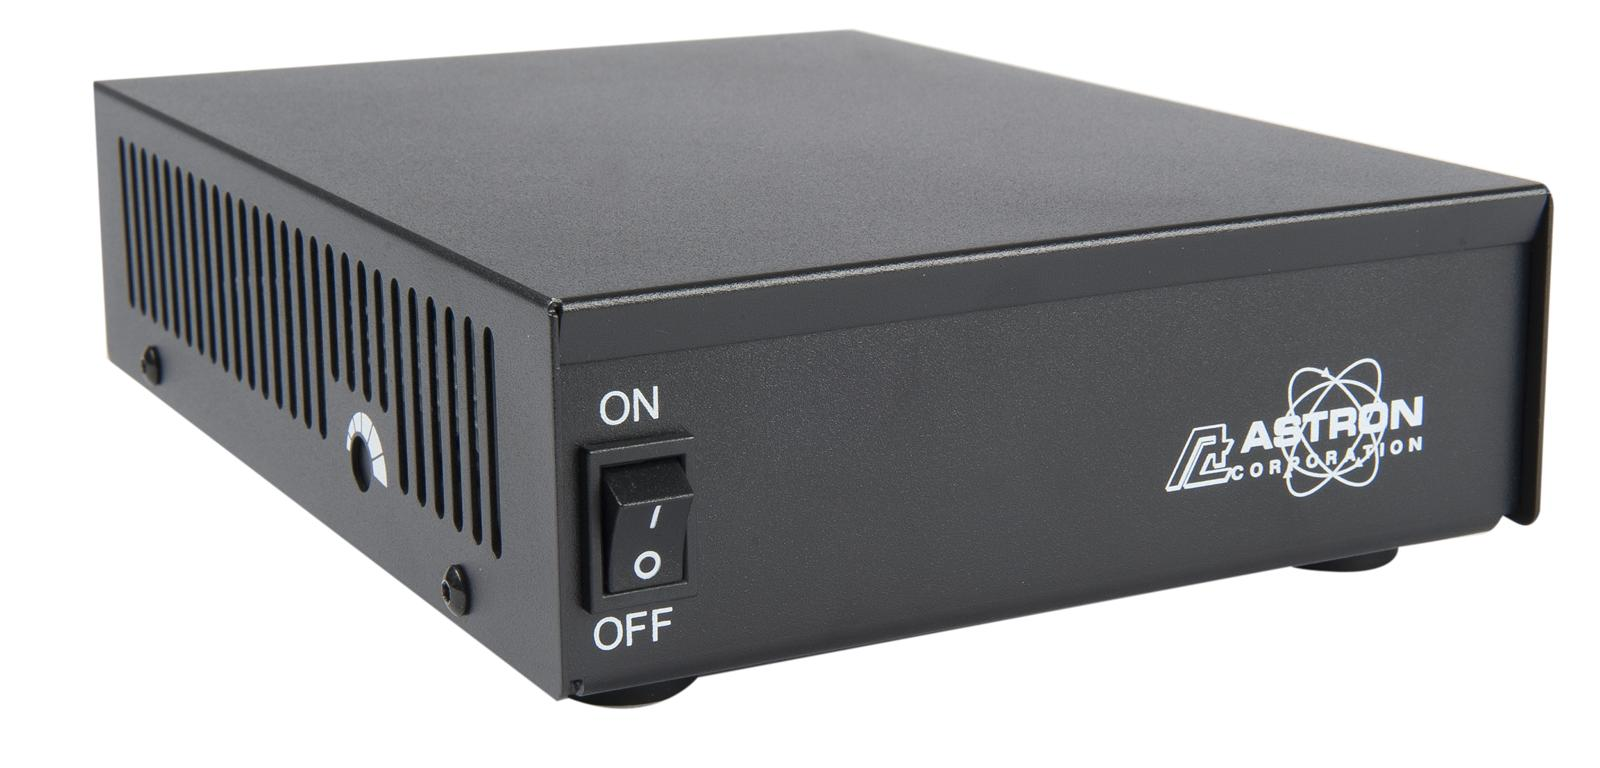 SS18 - Astron Desk Top Switching Power Supply 15 Amp